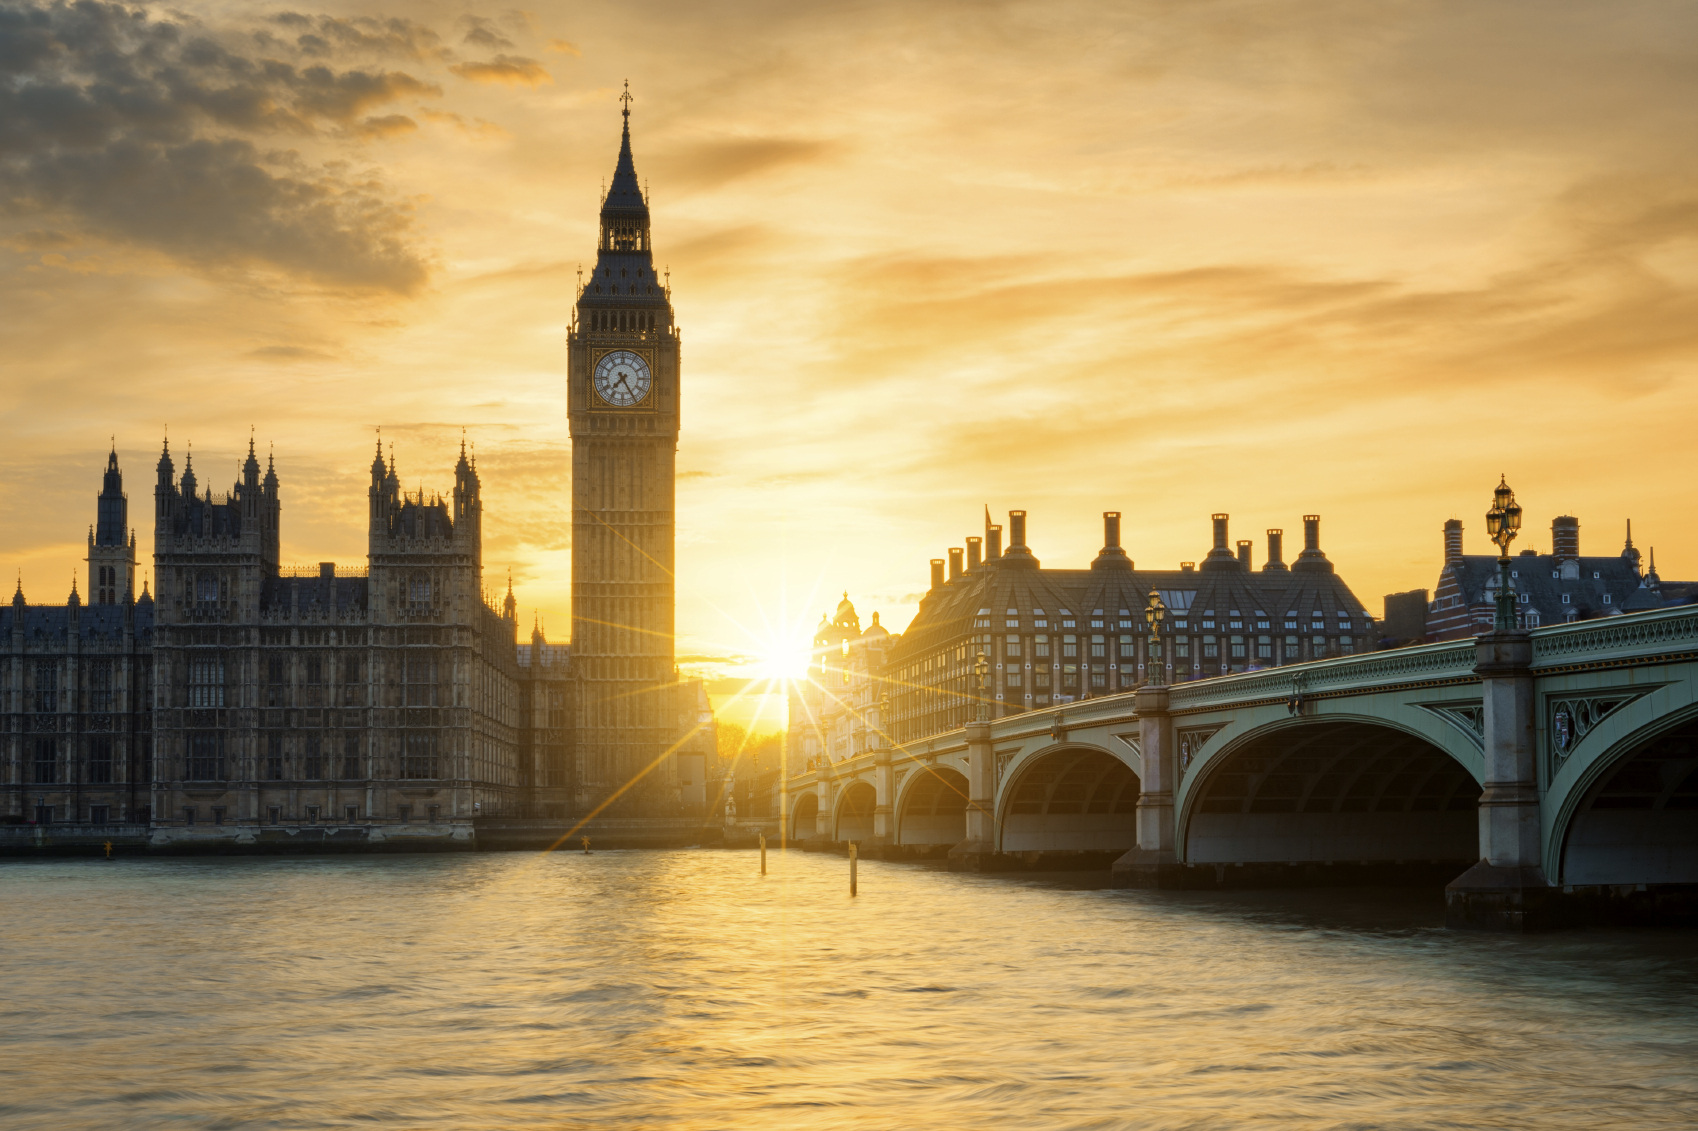 Sunset over Westminster (Getty Images)